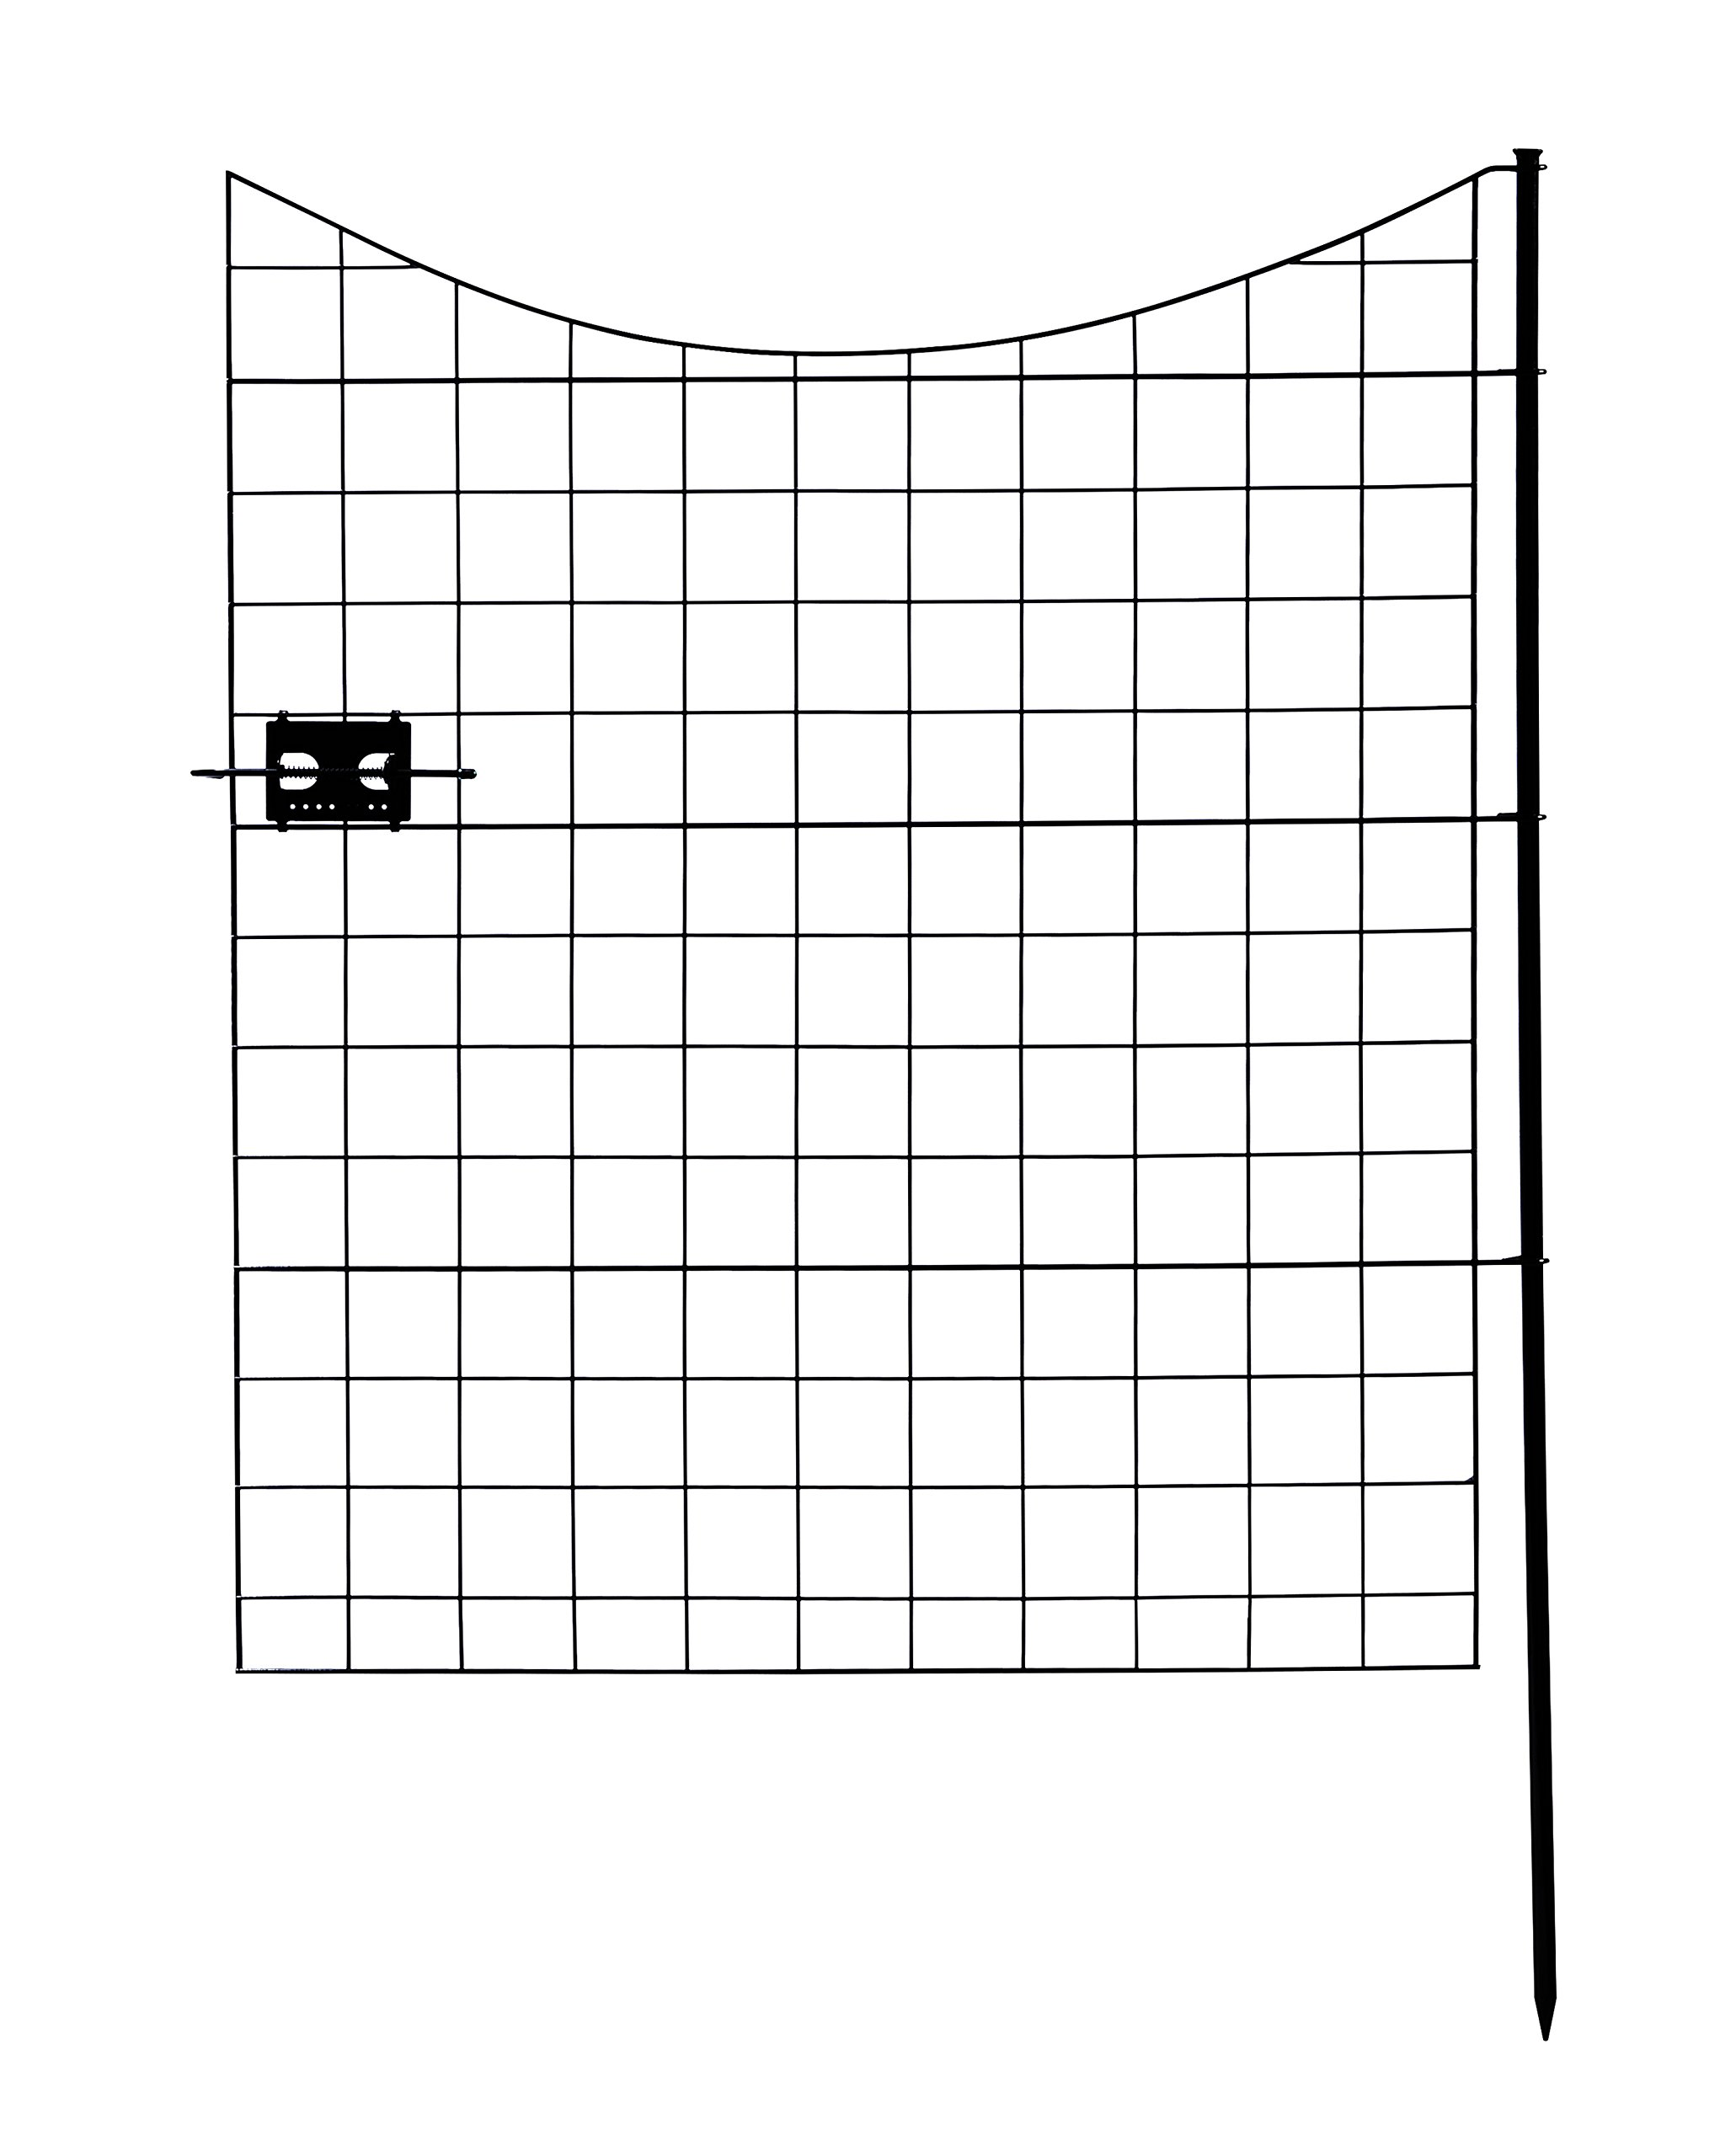 Zippity Outdoor Products WF29012 Black Metal Gate, 41'', by Zippity Outdoor Products